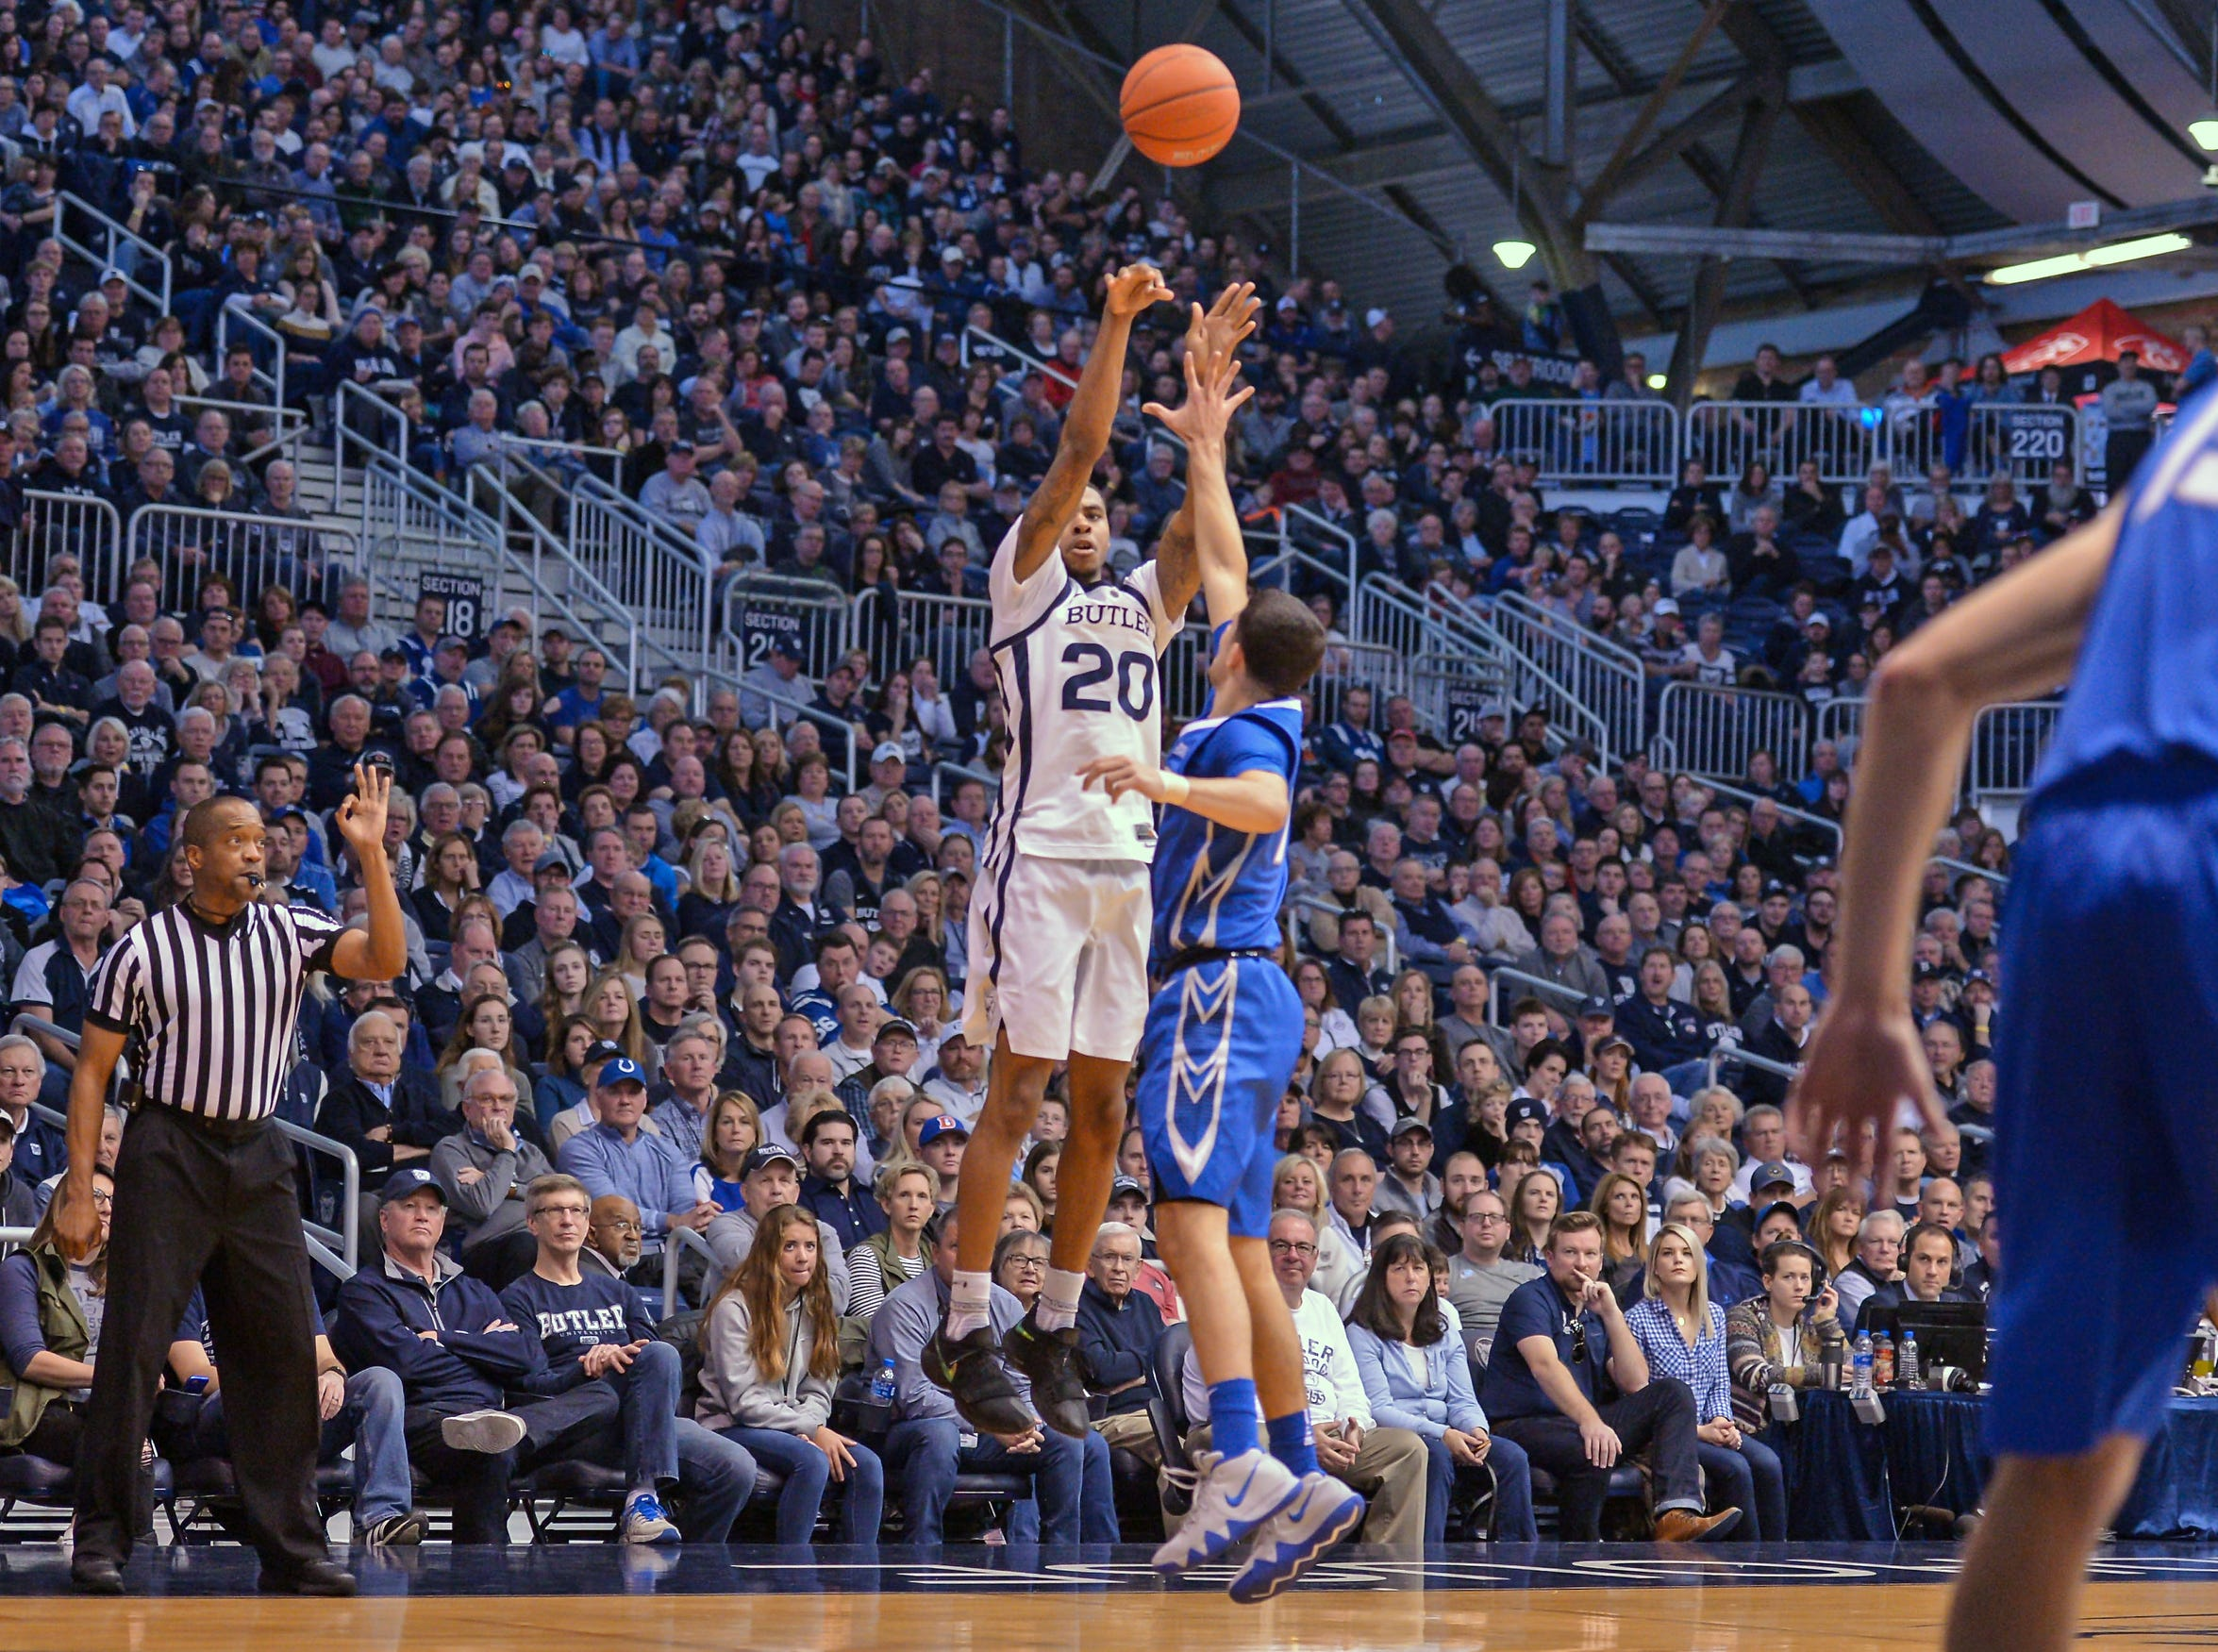 Butler Bulldogs forward Henry Baddley (20) scores a three-pointer against the Creighton Bluejays during the first half of game action between Butler University and Creighton University, at Hinkle Fieldhouse in Indianapolis, Indiana on Saturday, Jan. 5, 2019.